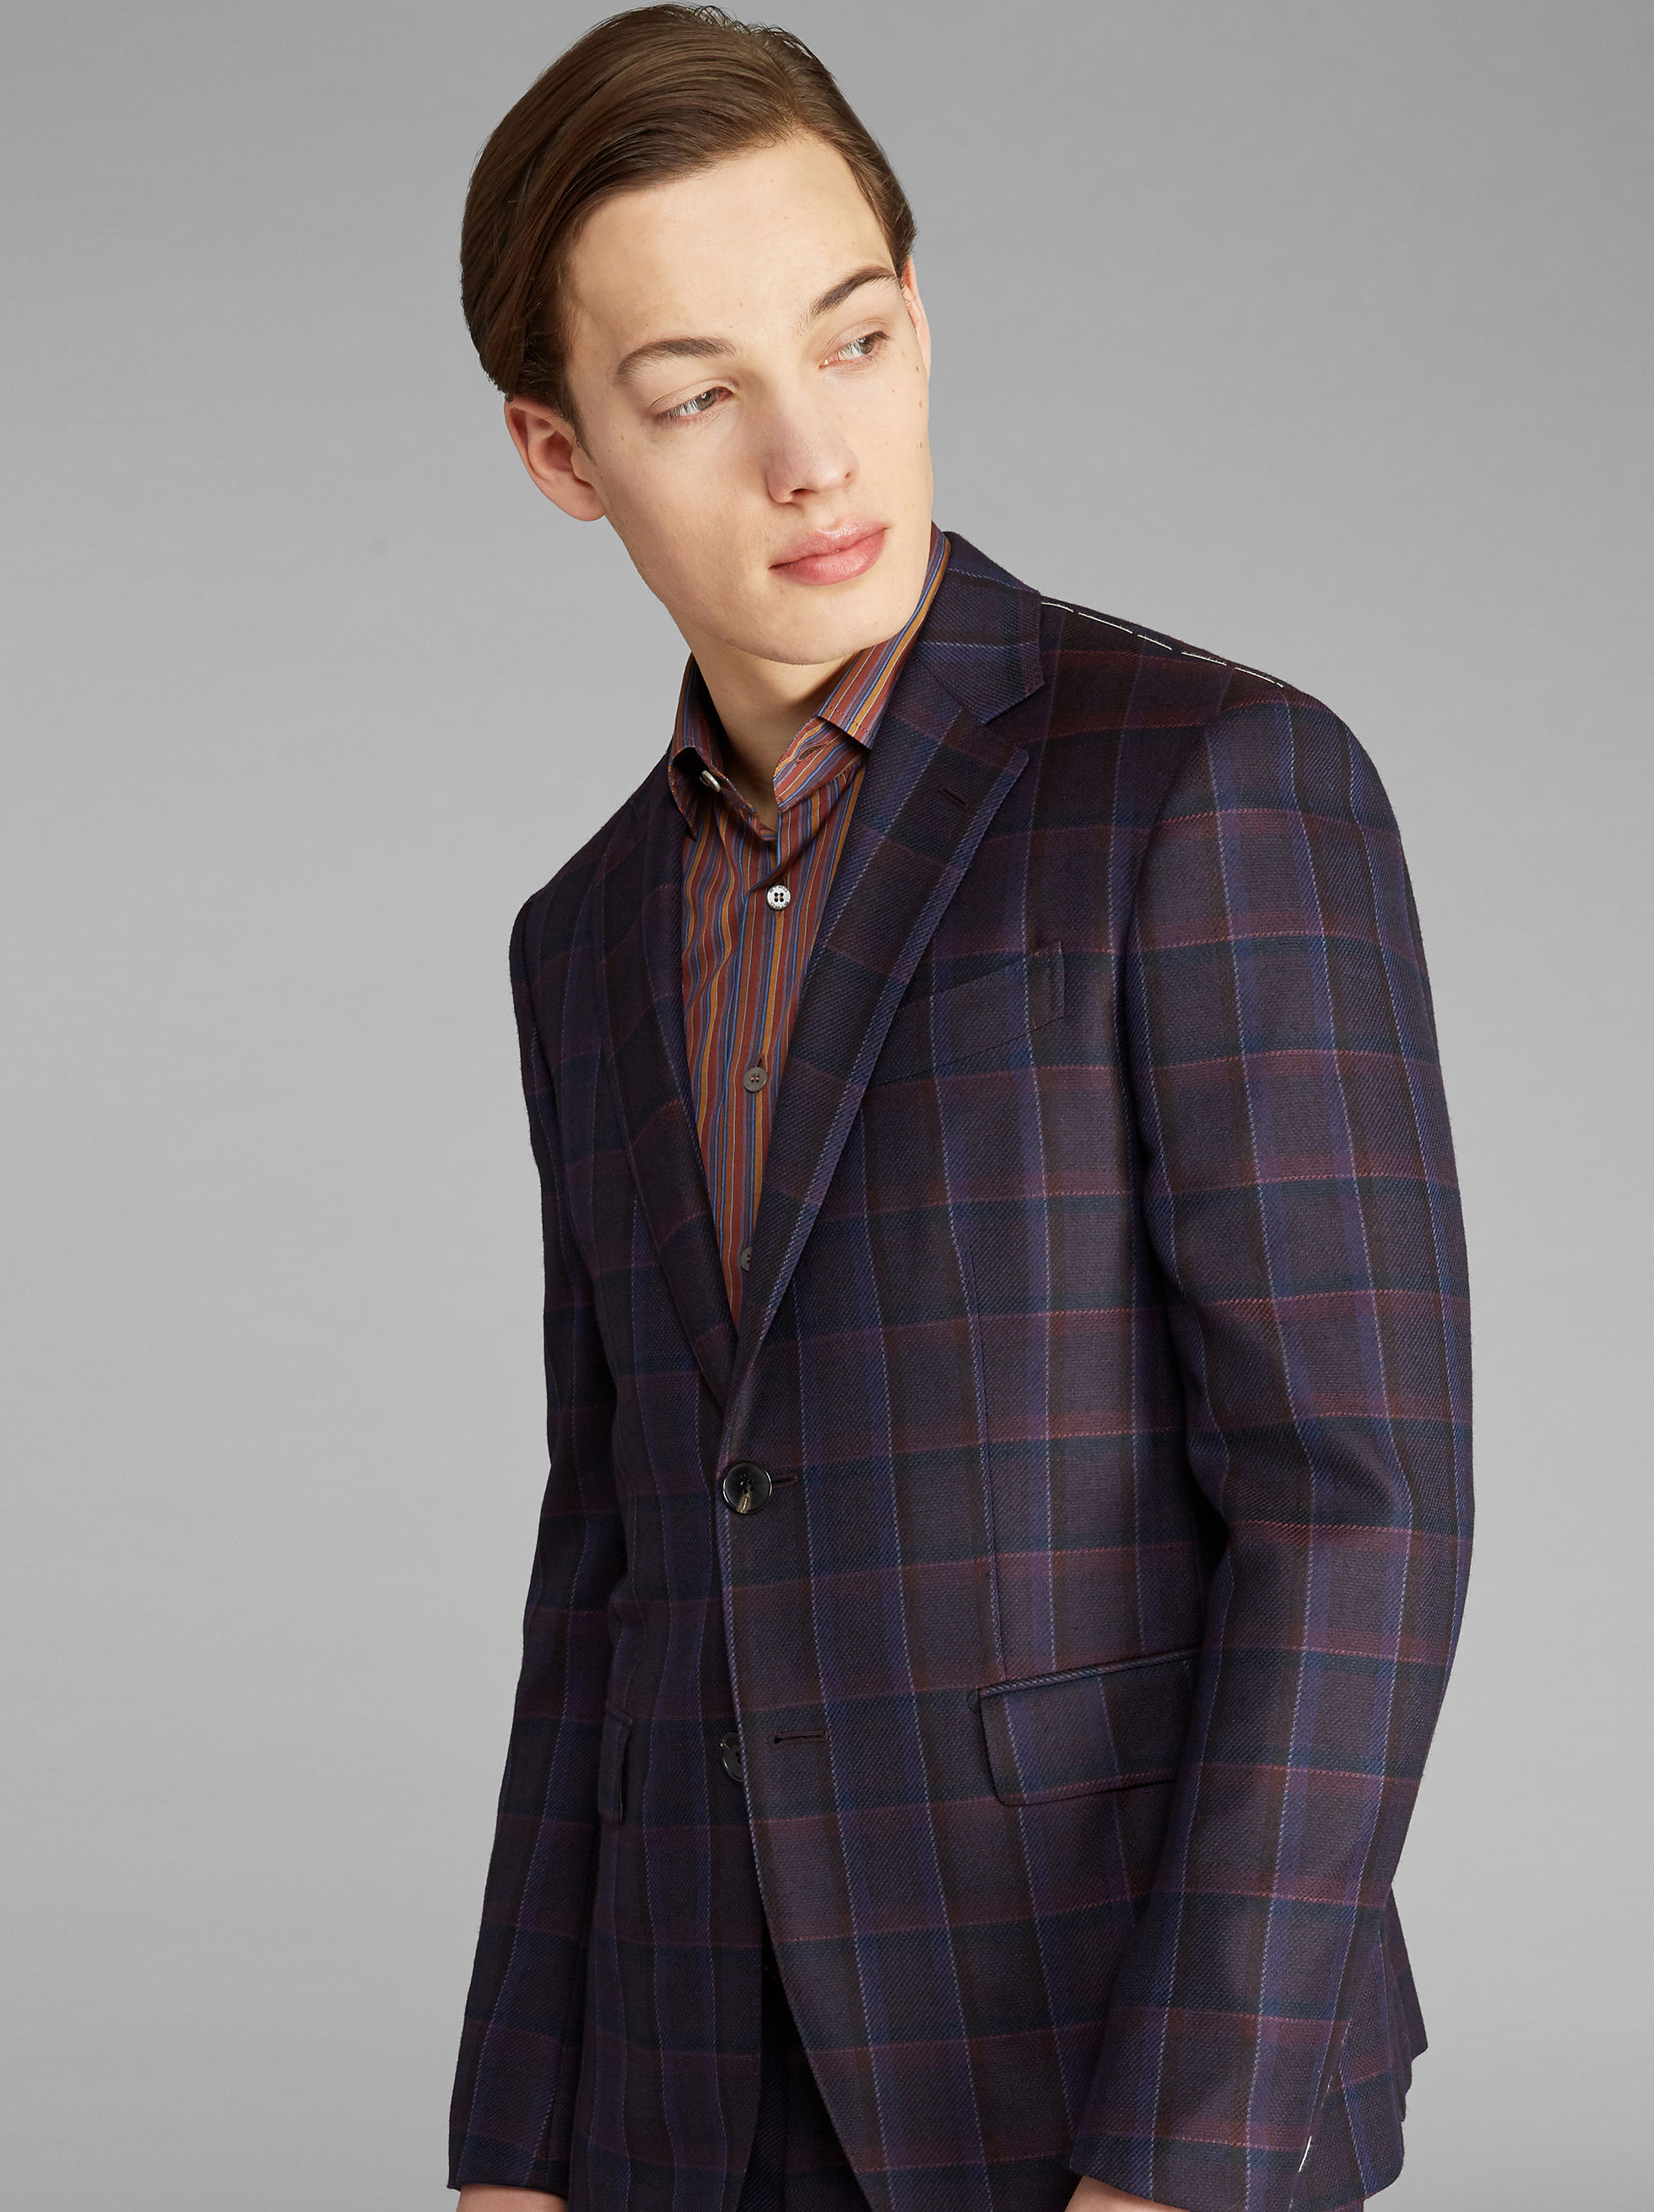 SEMI-TRADITIONAL CHECK SUIT